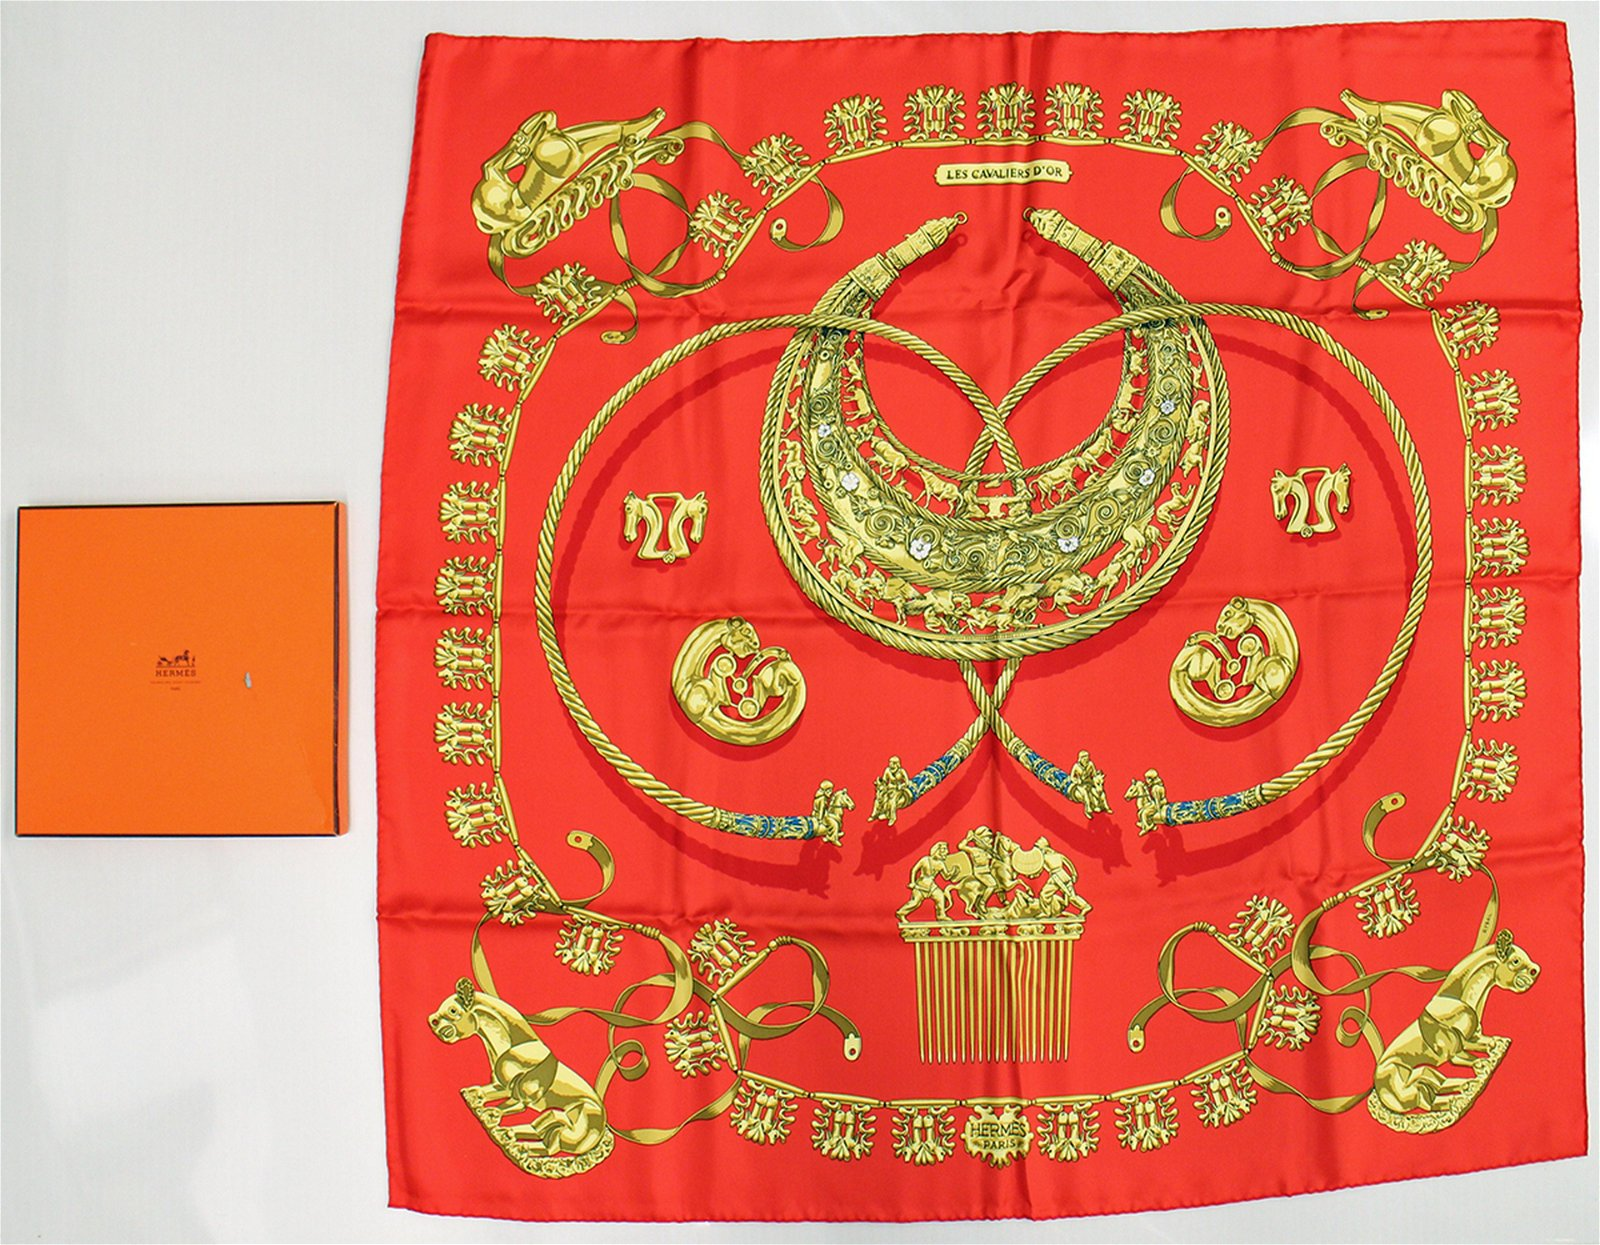 HERMES LES CAVALIERS D'OR SCARF W/ BOX